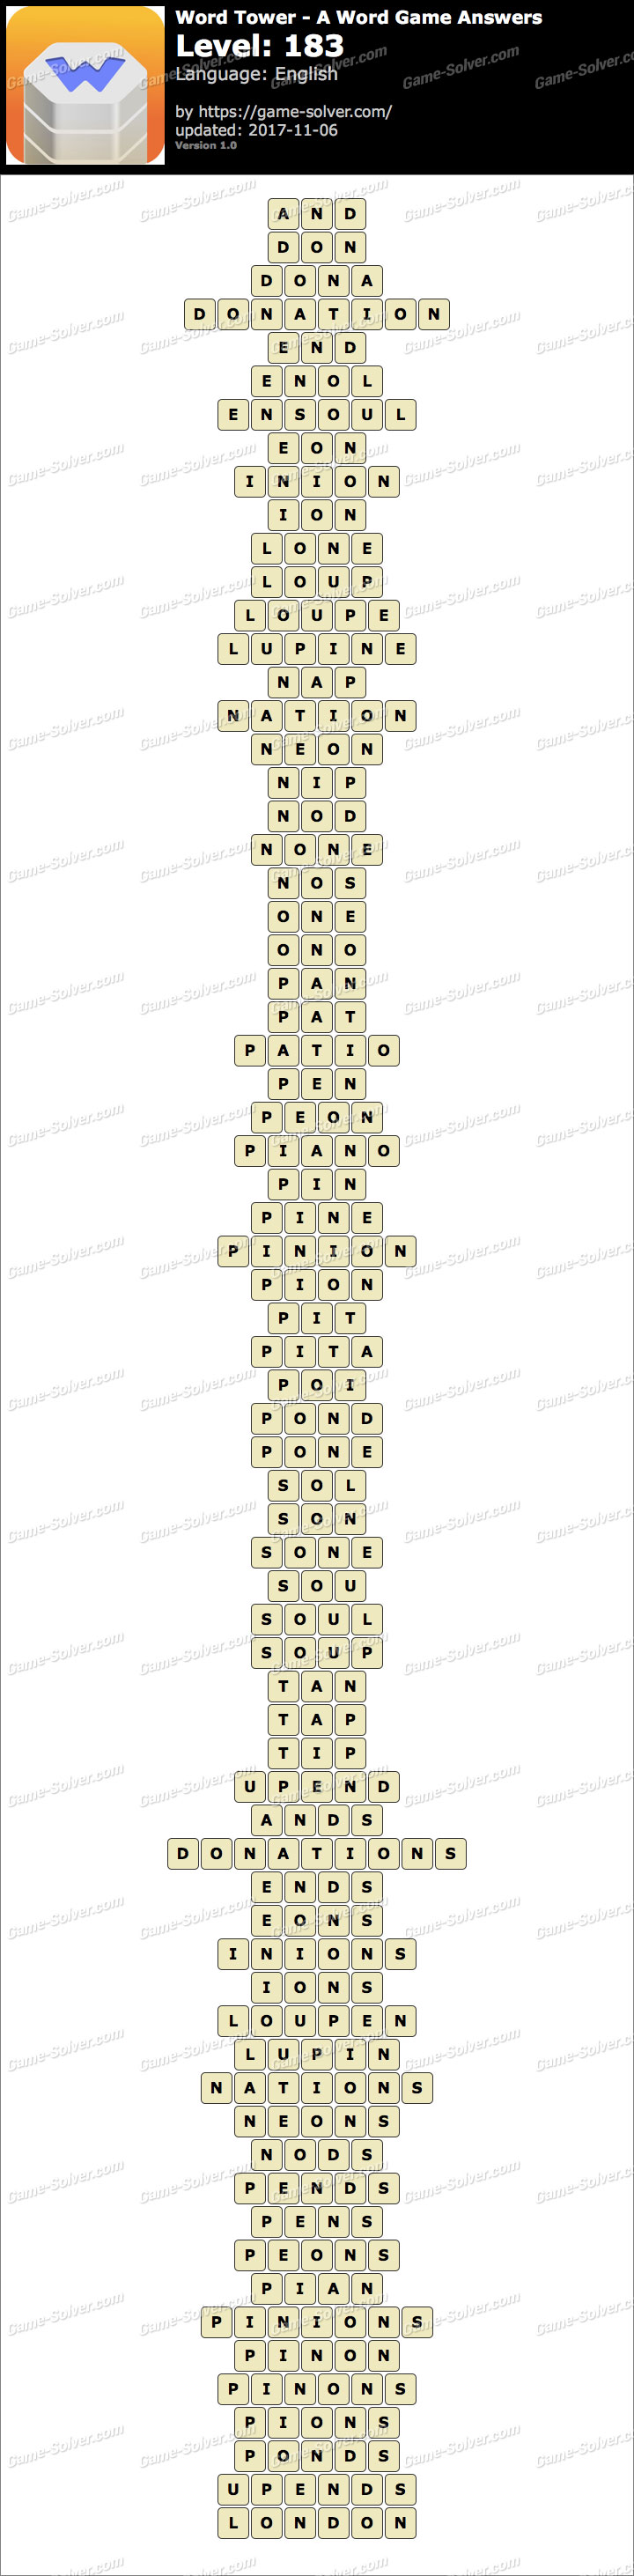 Word Tower Level 183 Answers